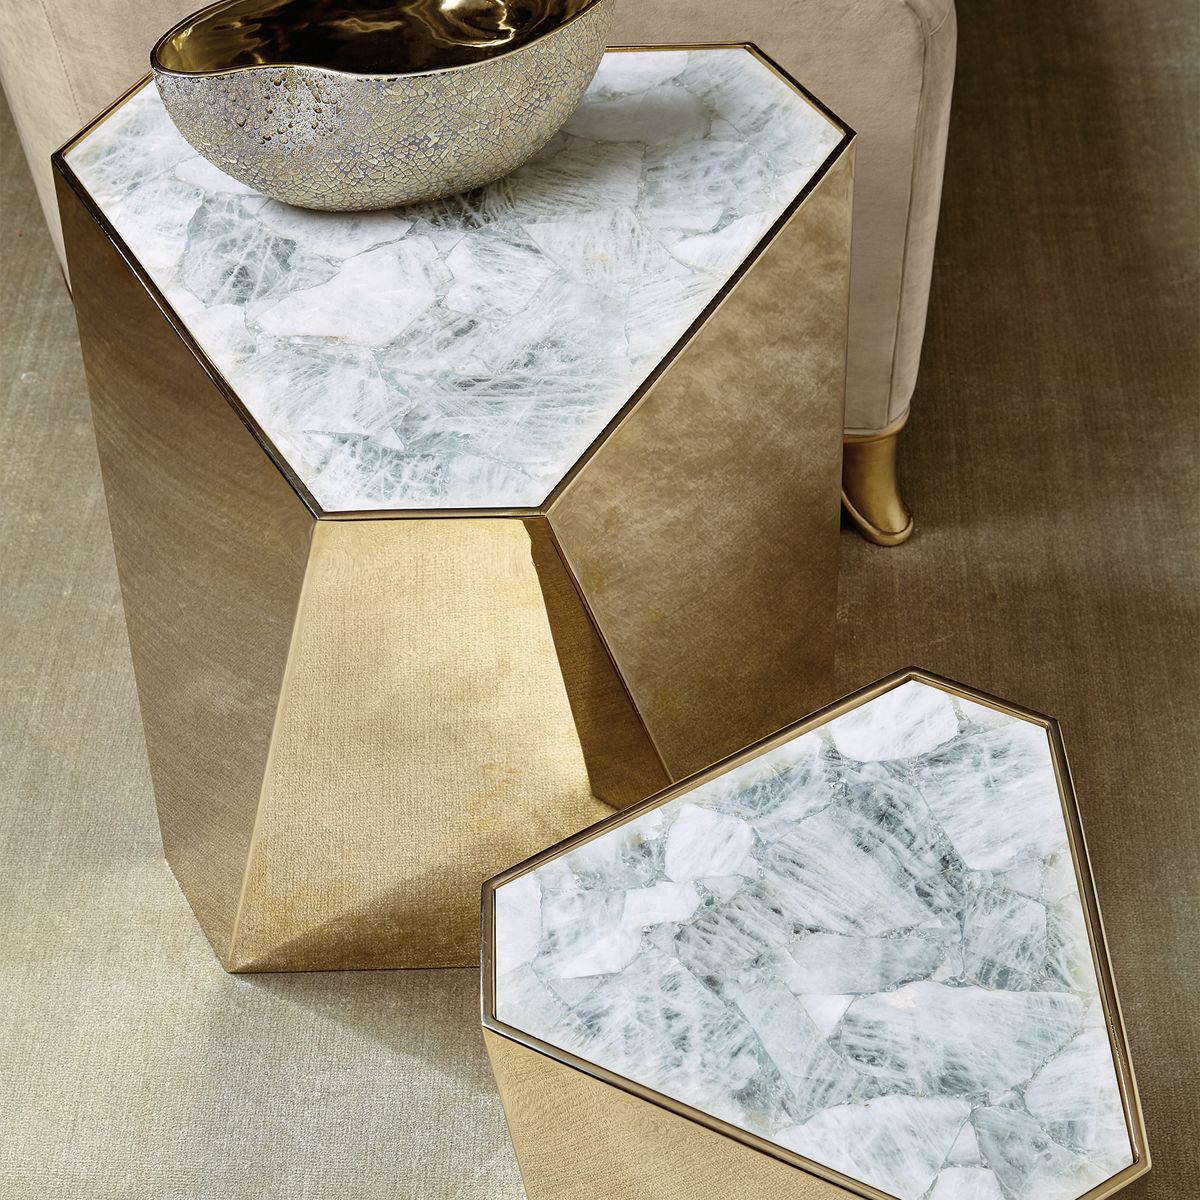 Coming soon, my Milne Gold Side Tables features a highly polished geometric profile, along with a luxury crystal stone top - sure to command attention in any home. http://www.maxsparrow.com.au/products/milne-gold-side-table-small